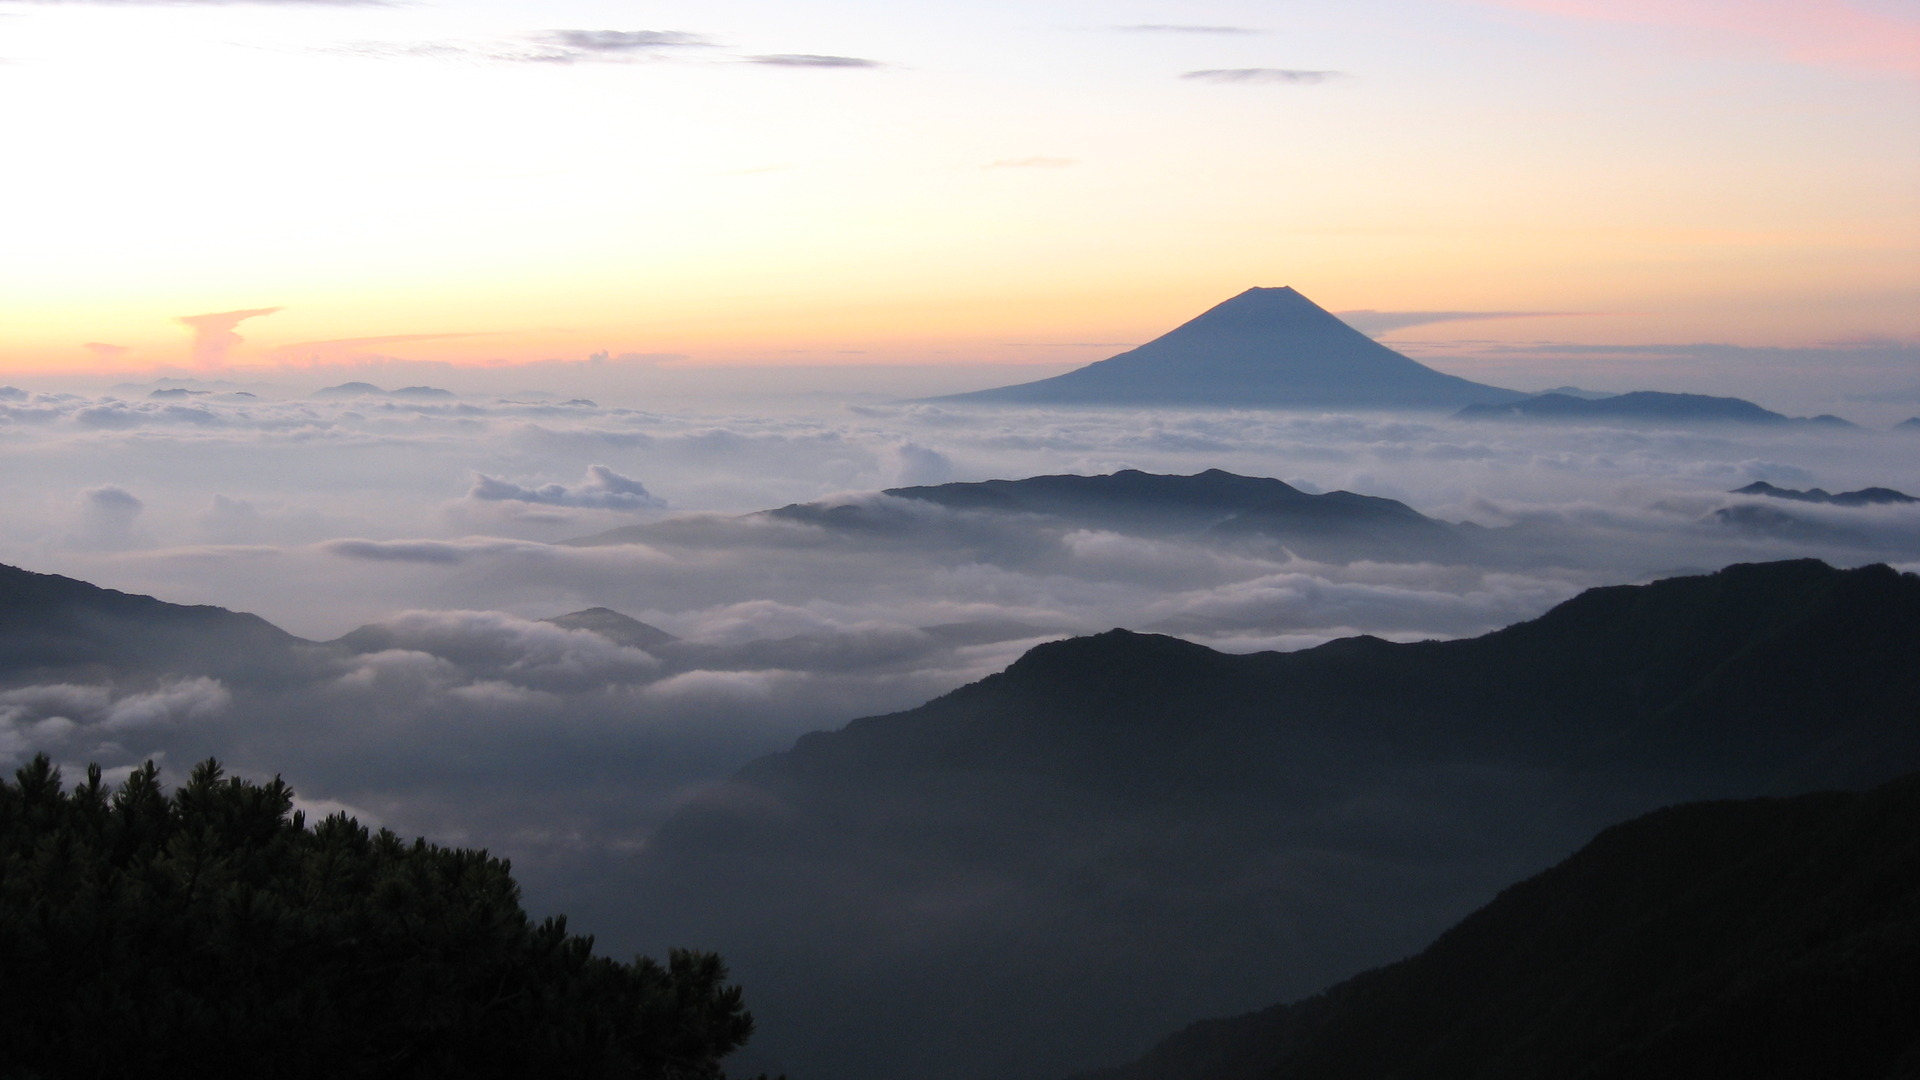 15 HD Mount Fuji Japan Wallpapers   HDWallSourcecom 1920x1080